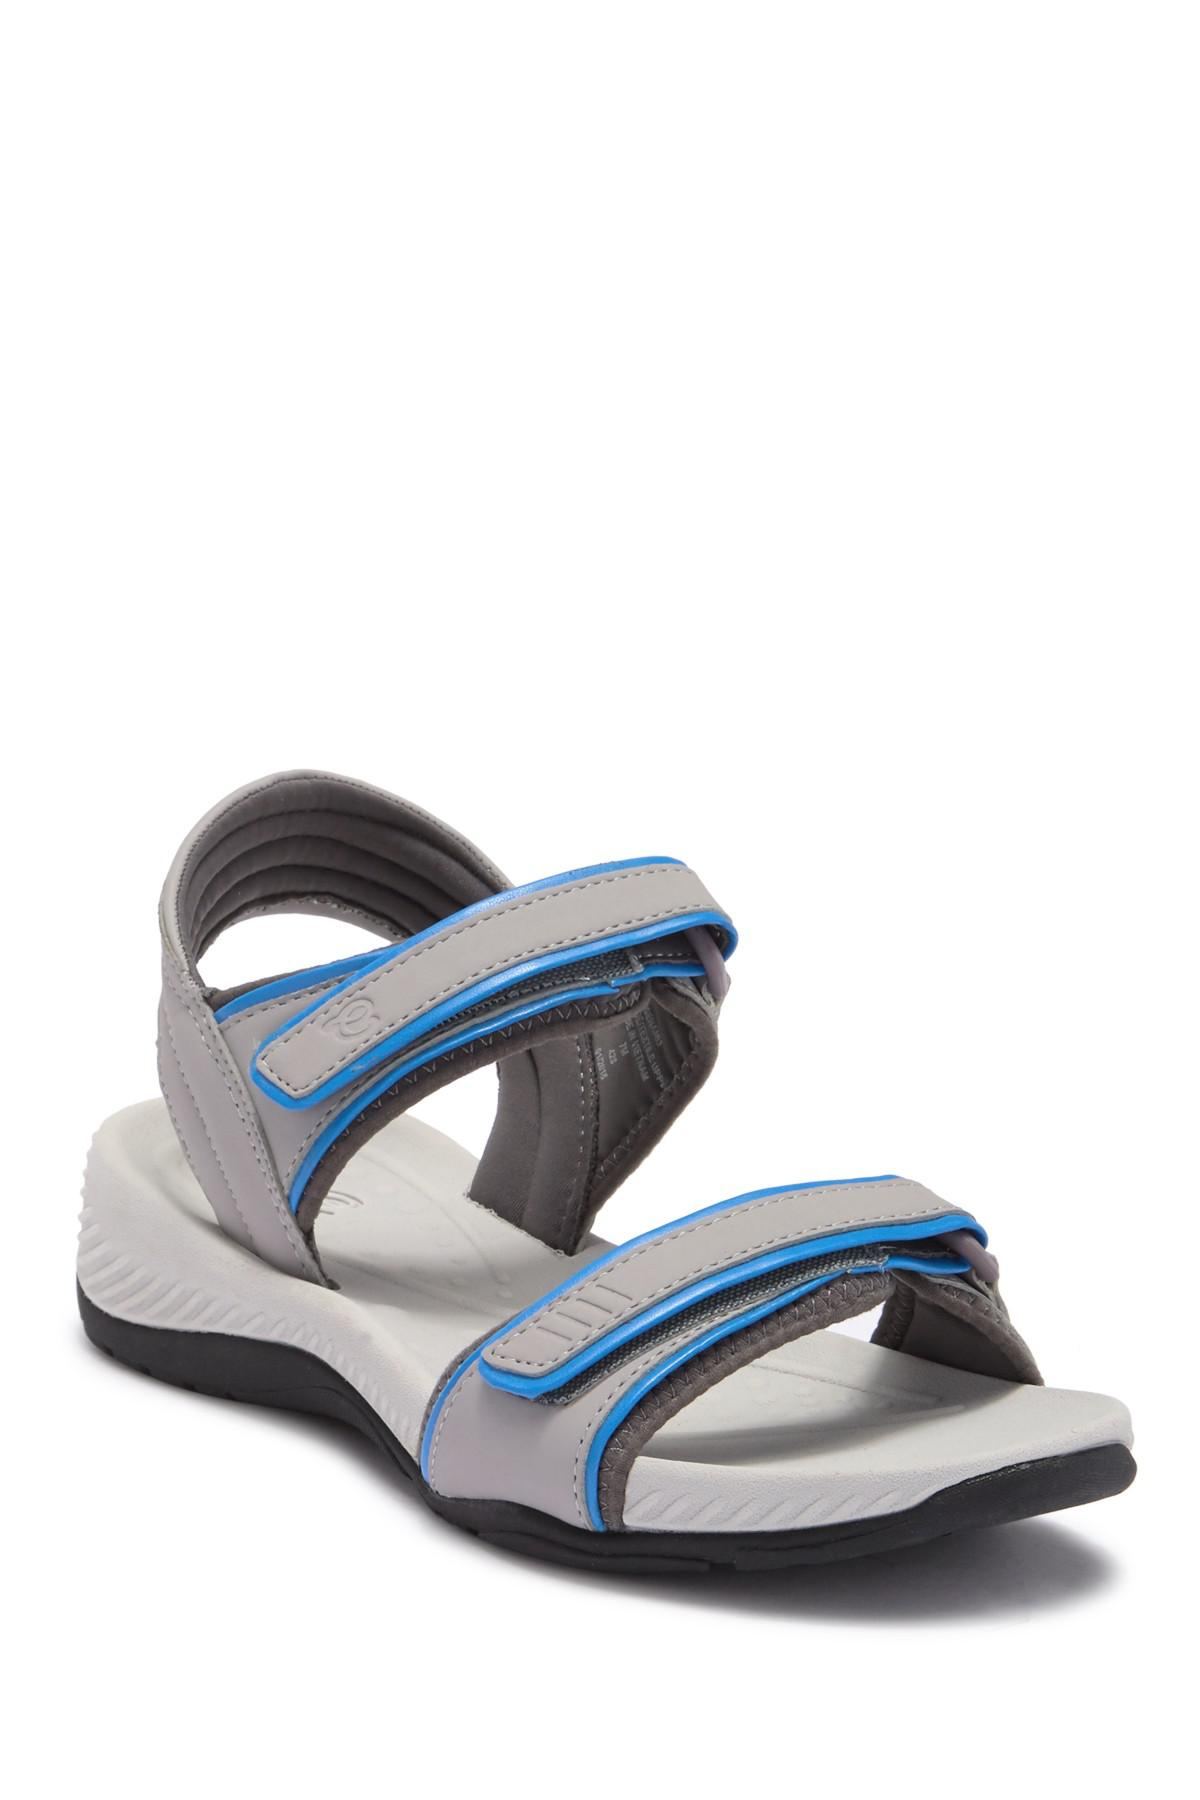 28b85bd5bf84 Lyst - Easy Spirit Nami 3 Sandal - Wide Width Available in Blue